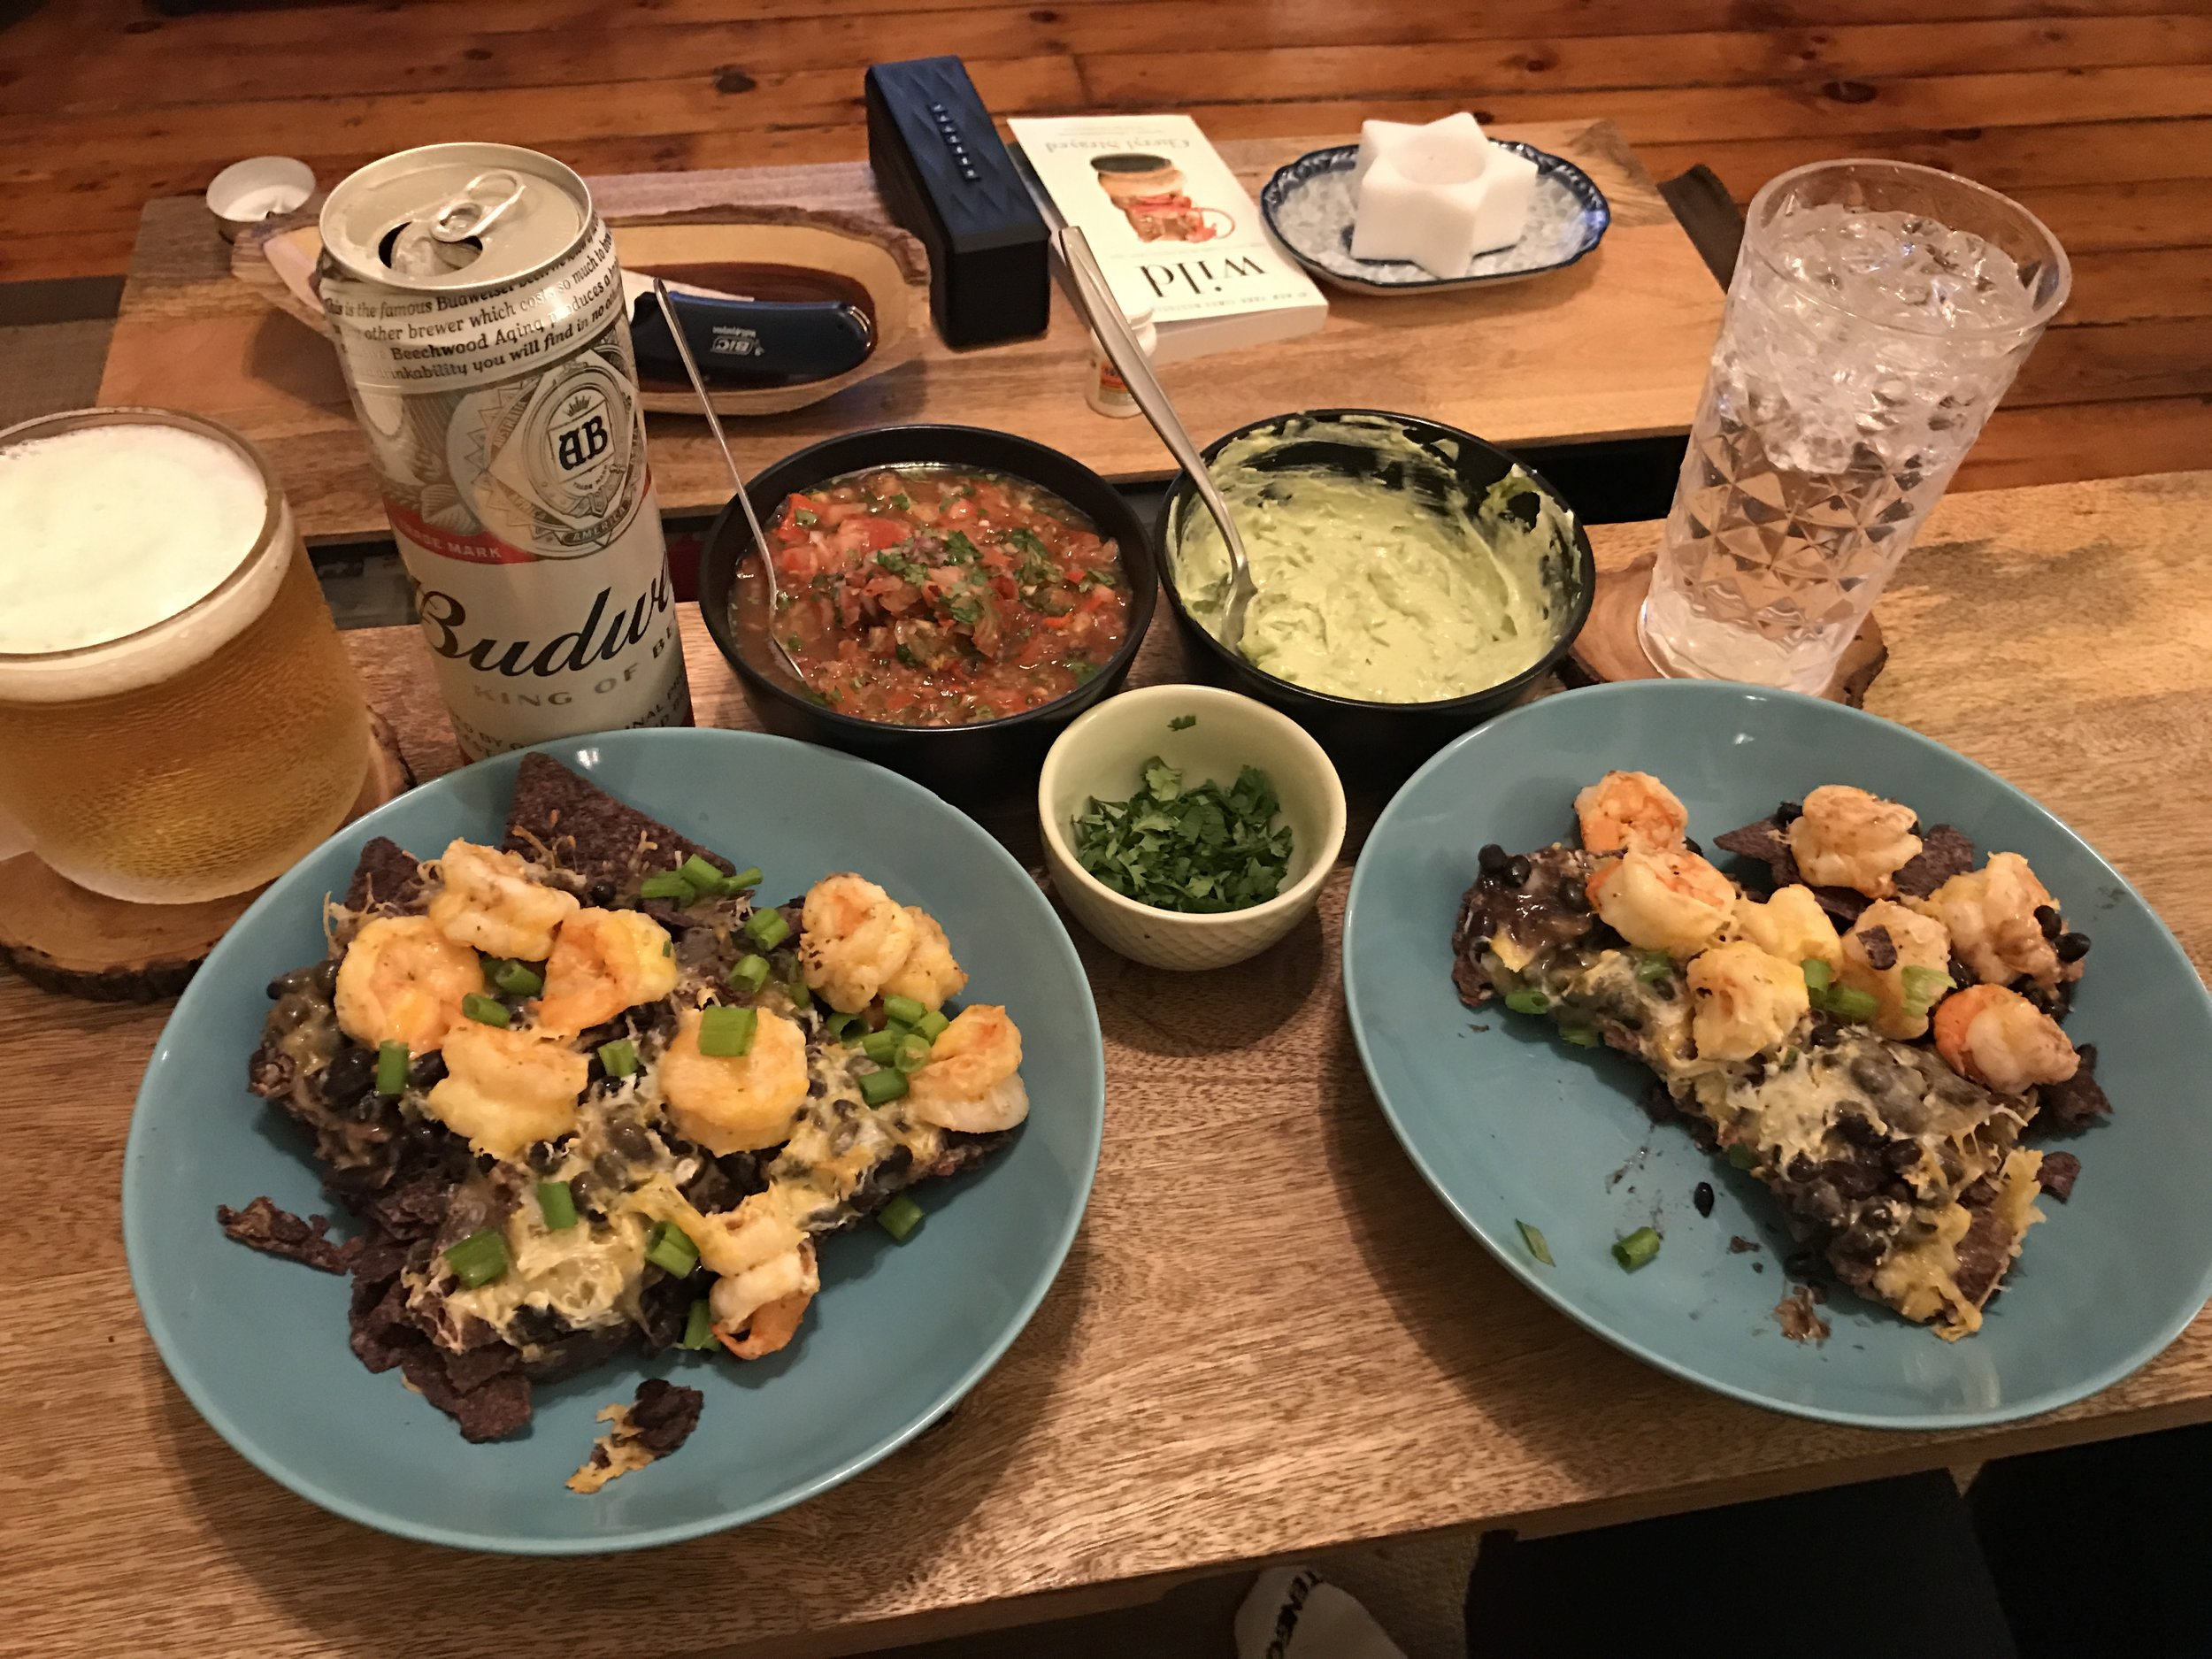 Individual portions of nachos so everyone can use however much of the toppings they want. Side Note: Patrick haynes may have consulted on this recipe.